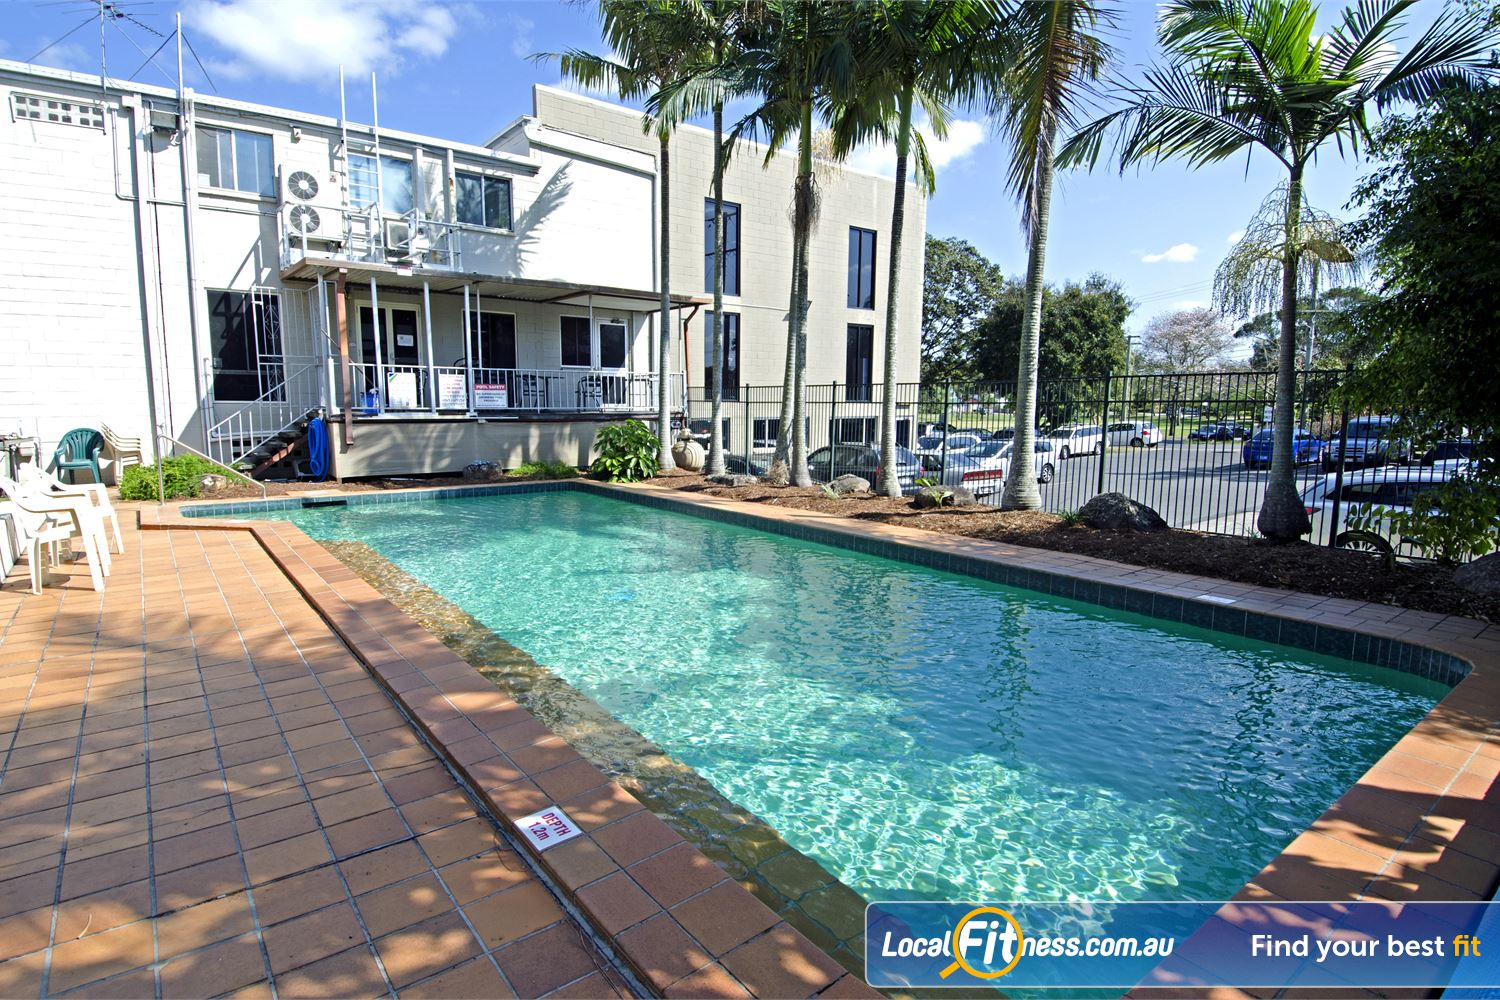 Goodlife Health Clubs Near Sherwood Add some swimming to your workouts with our unique outdoor swimming pool.